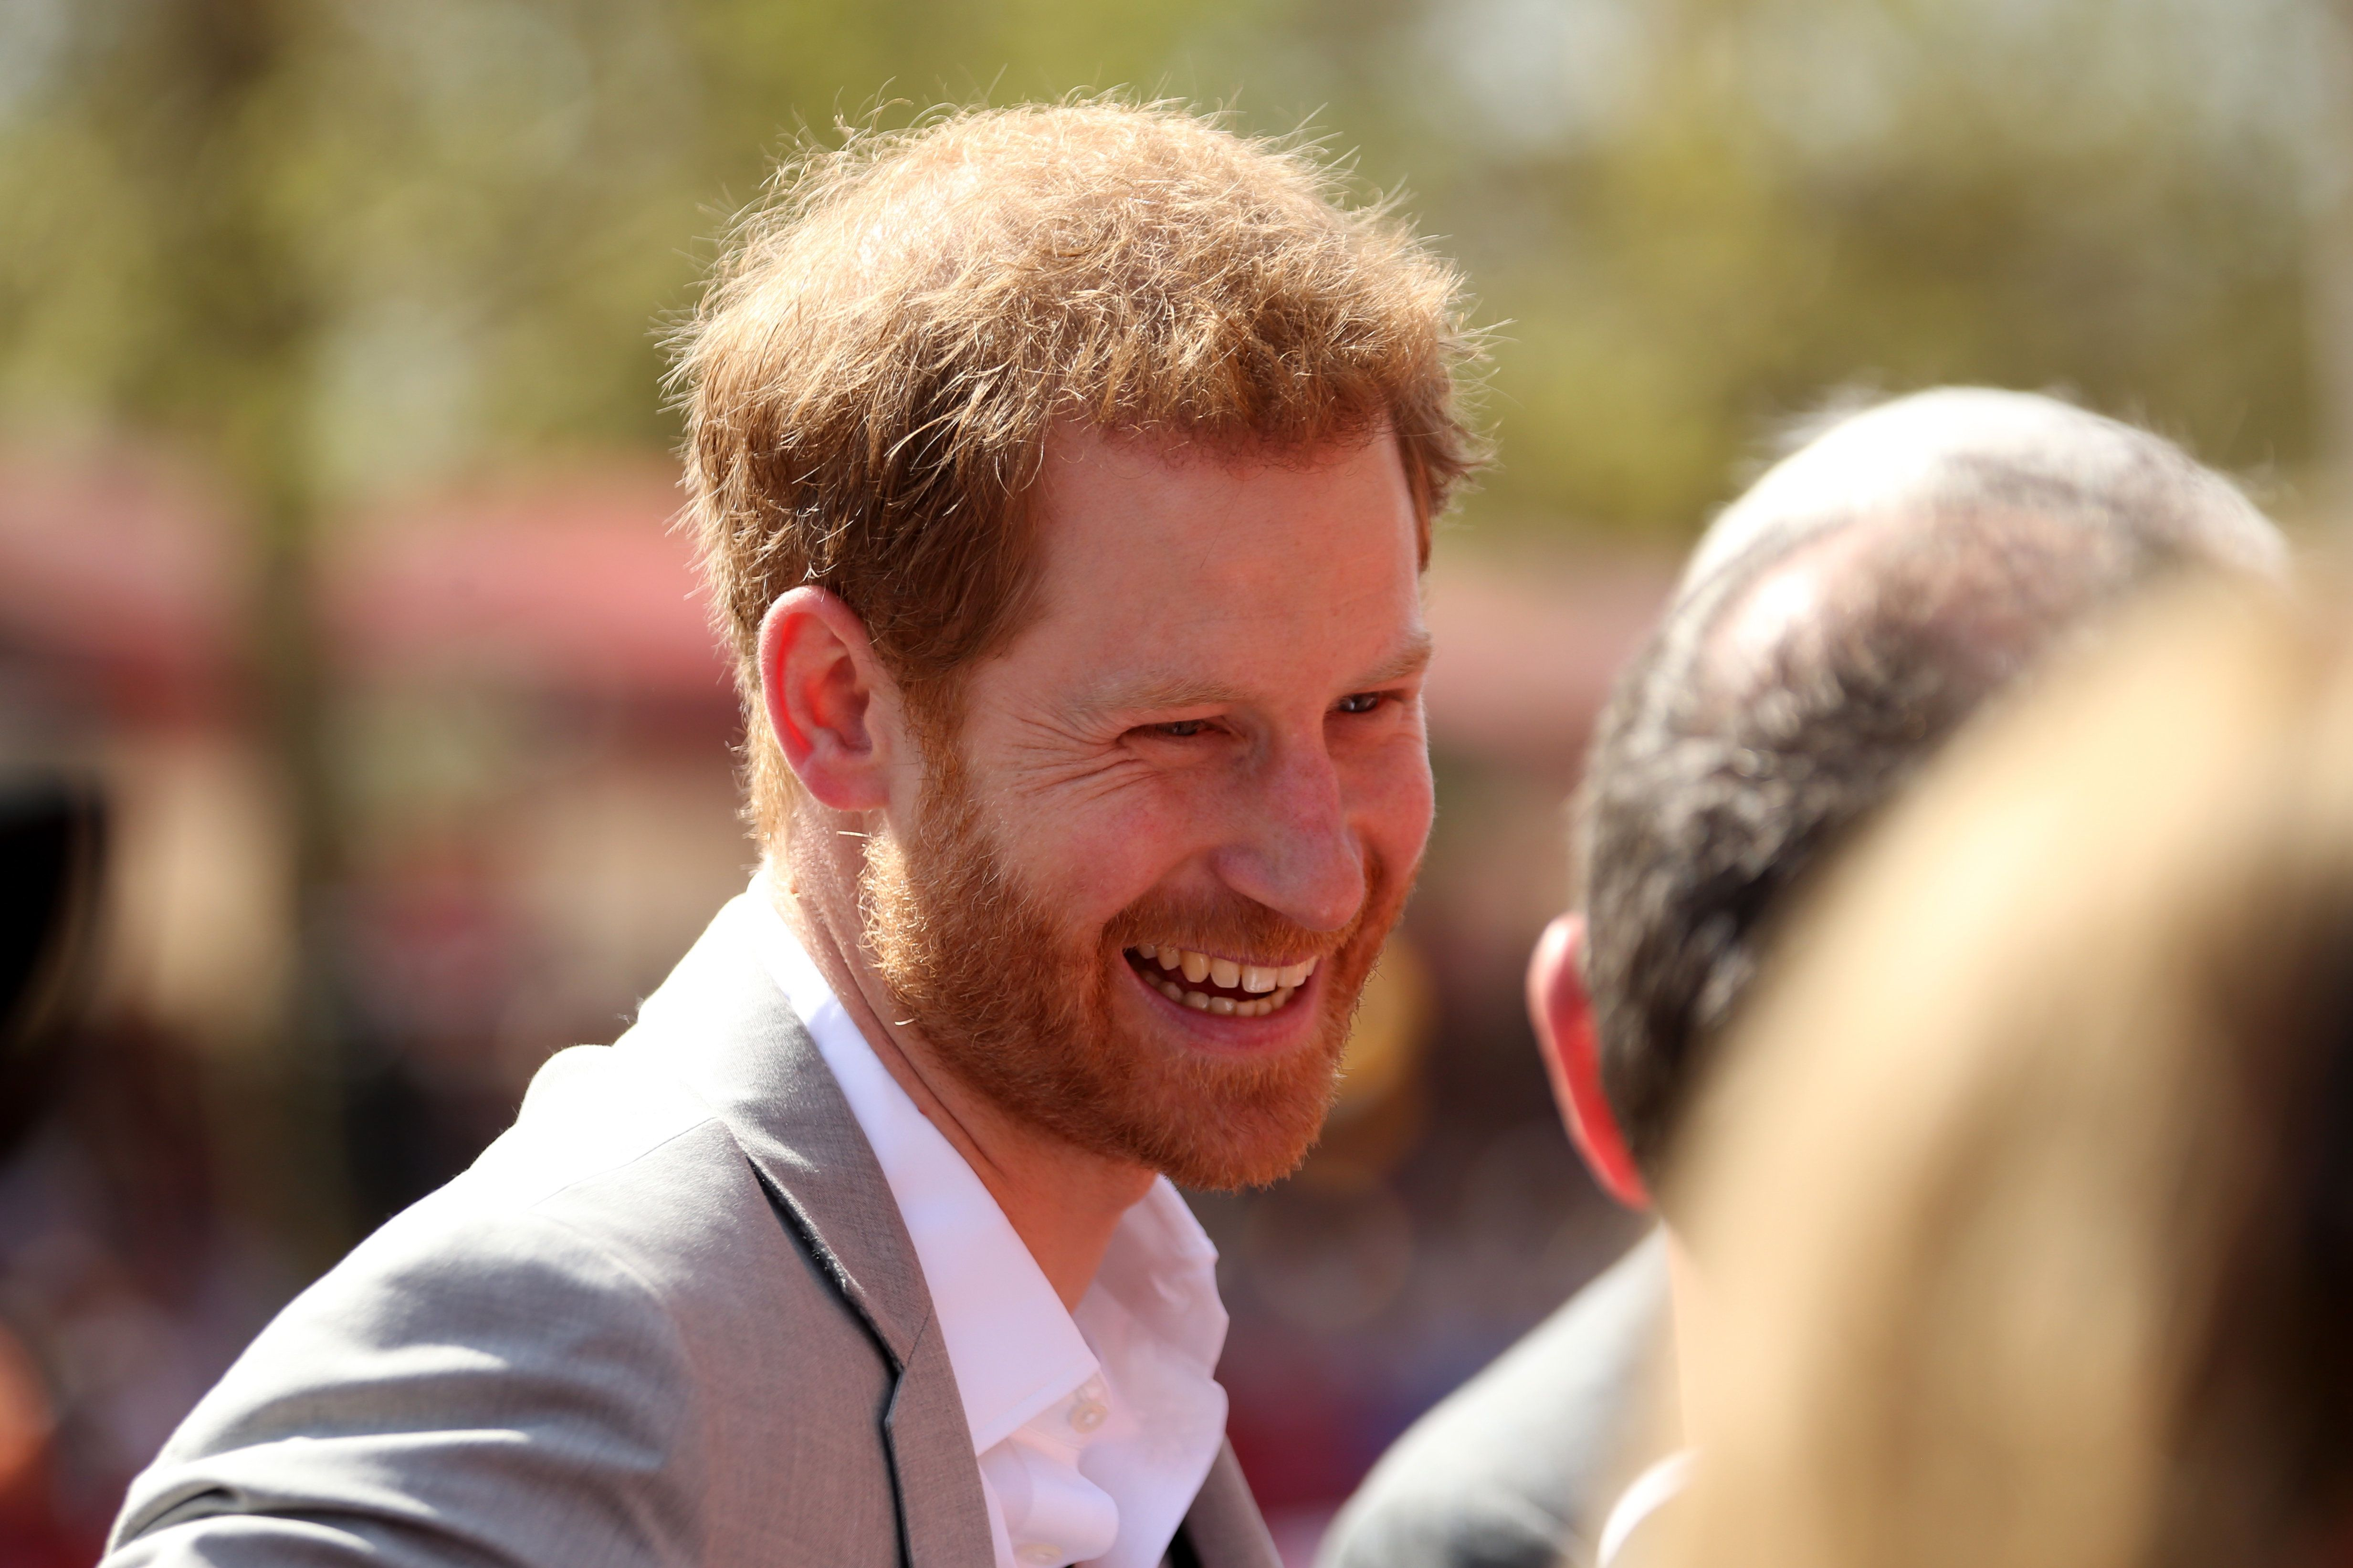 Prince Harry's full title isHis Royal Highness Prince Henry Charles Albert David of Wales. And, no, Wales is not his last name.